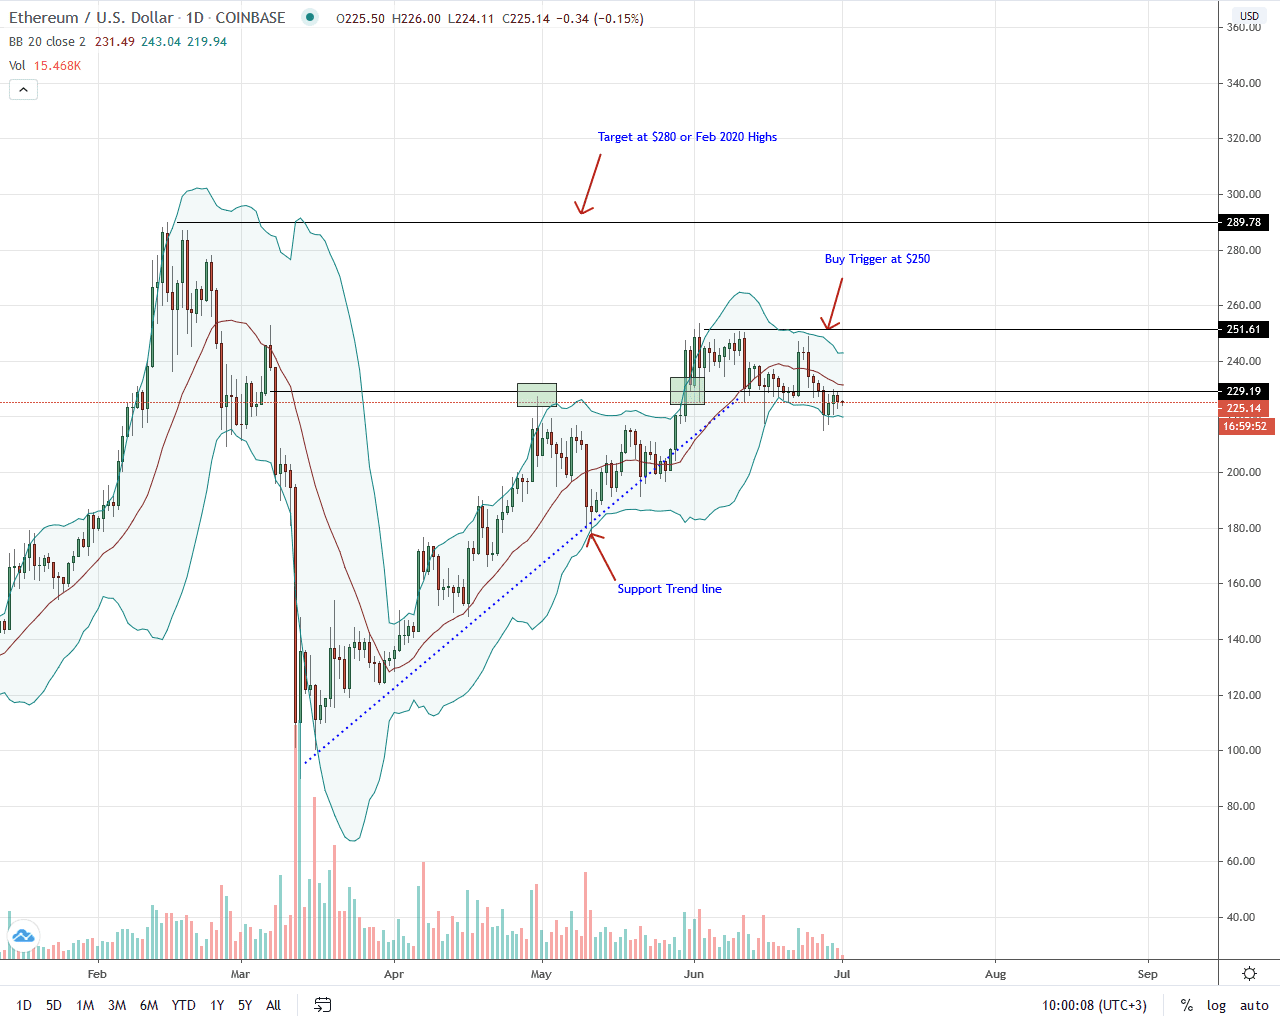 Ethereum Daily Chart for July 1, 2020